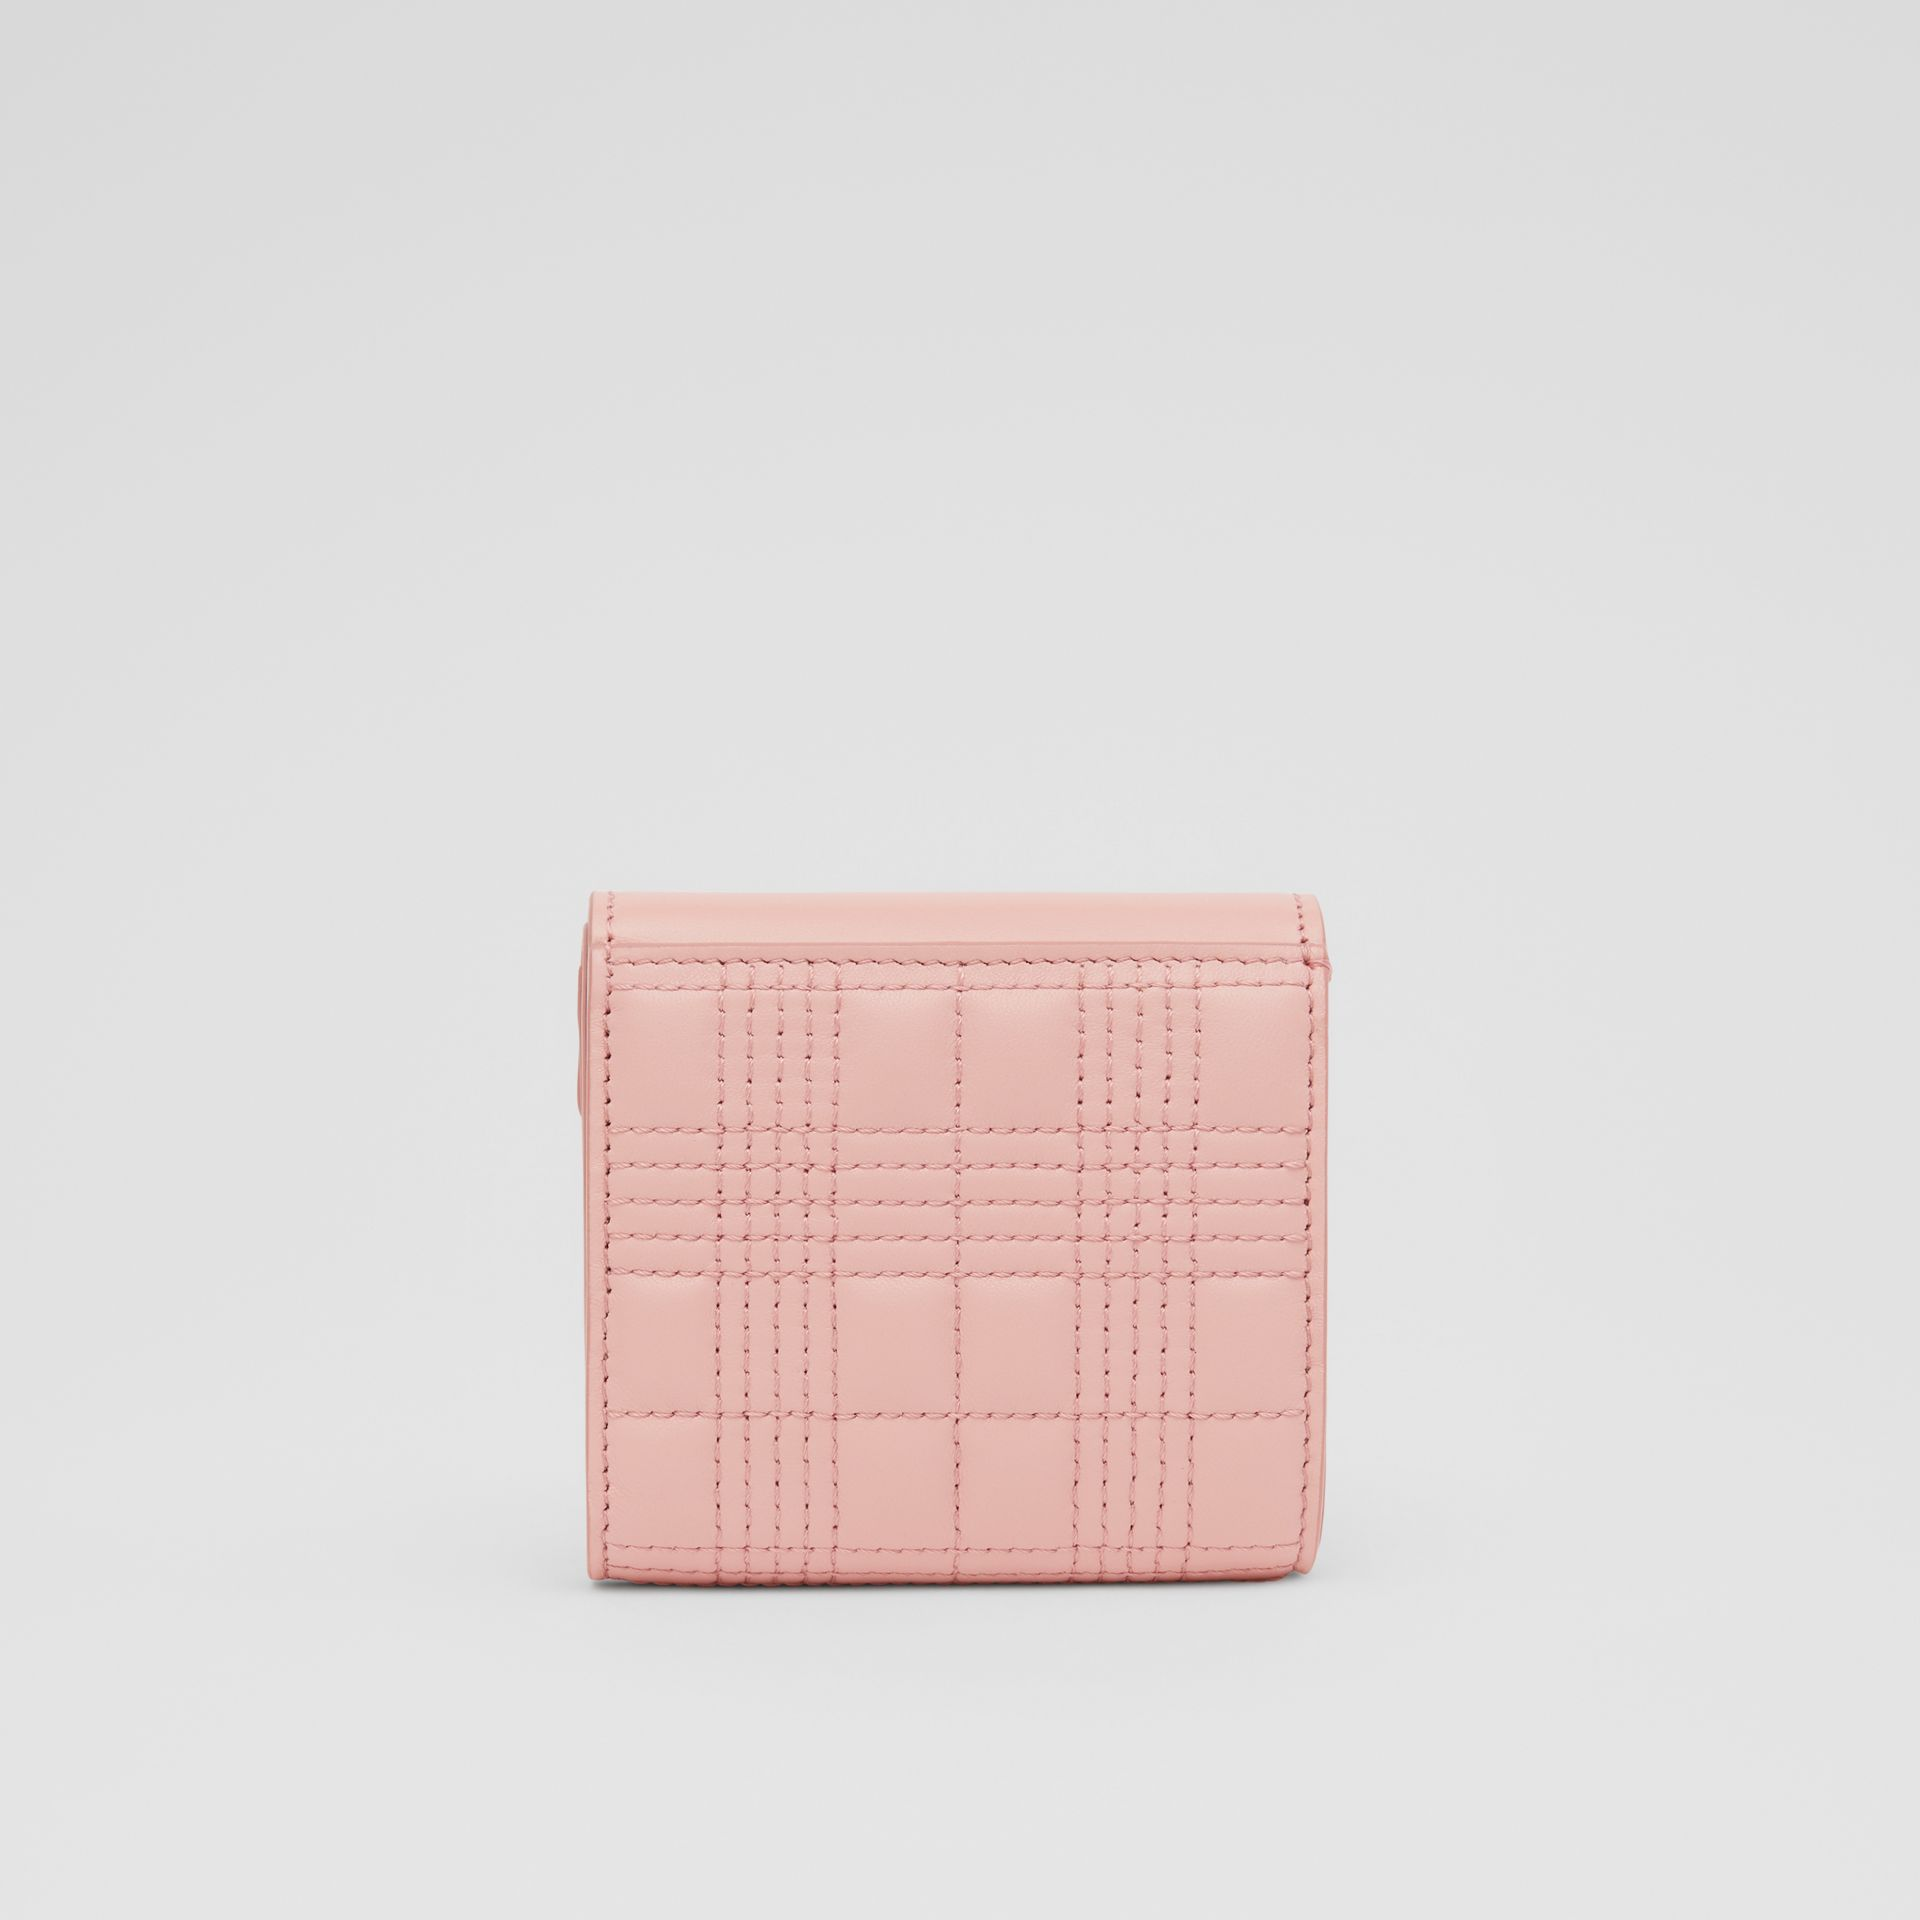 Quilted Lambskin Folding Wallet in Blush Pink - Women | Burberry Hong Kong S.A.R - gallery image 3